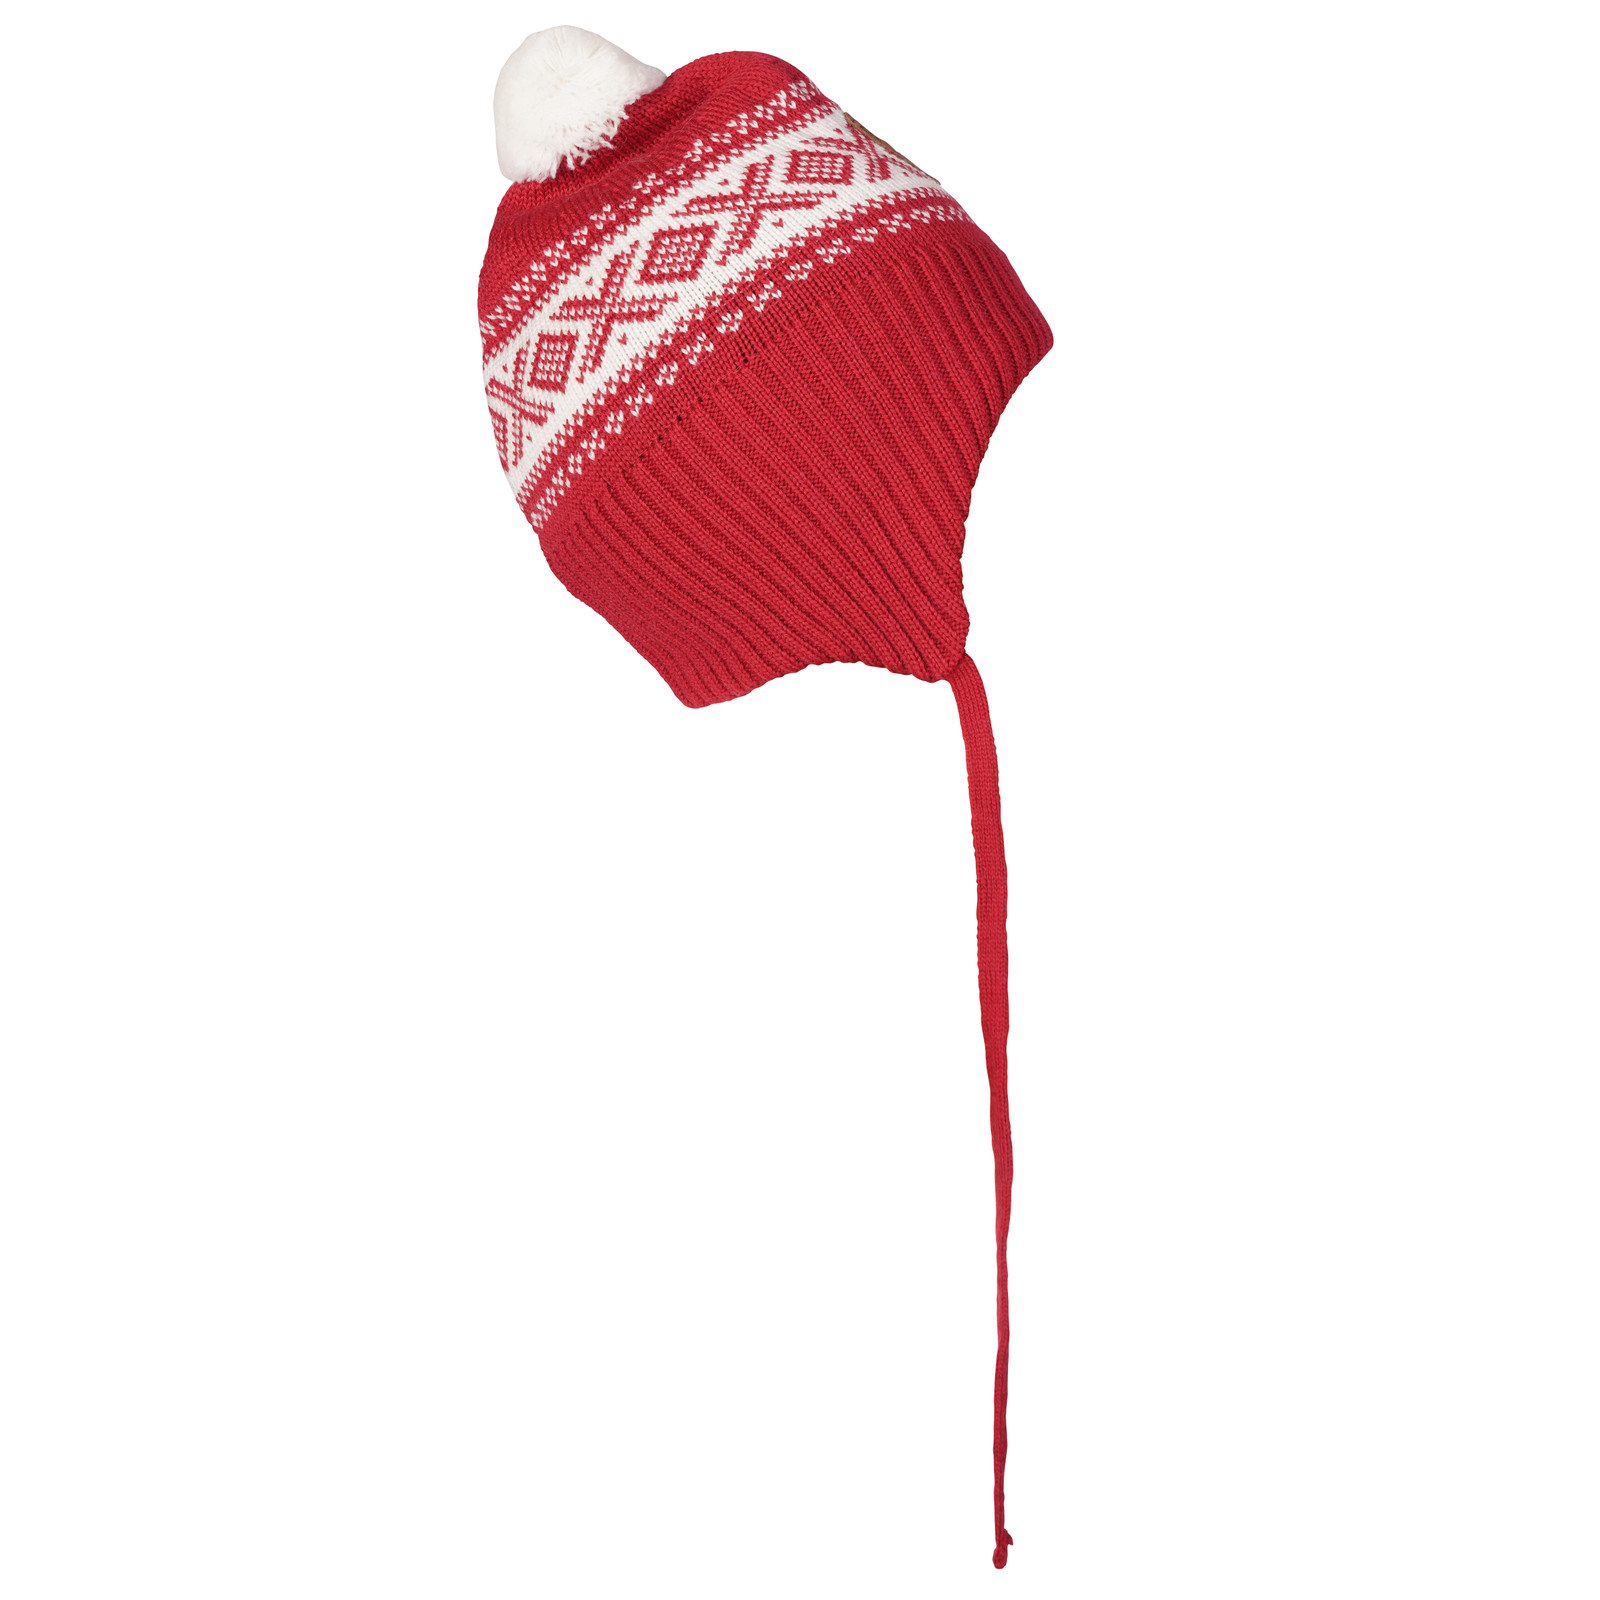 Dale of Norway Cortina Kids Hat 2-4, Raspberry/Off White, 43331-B